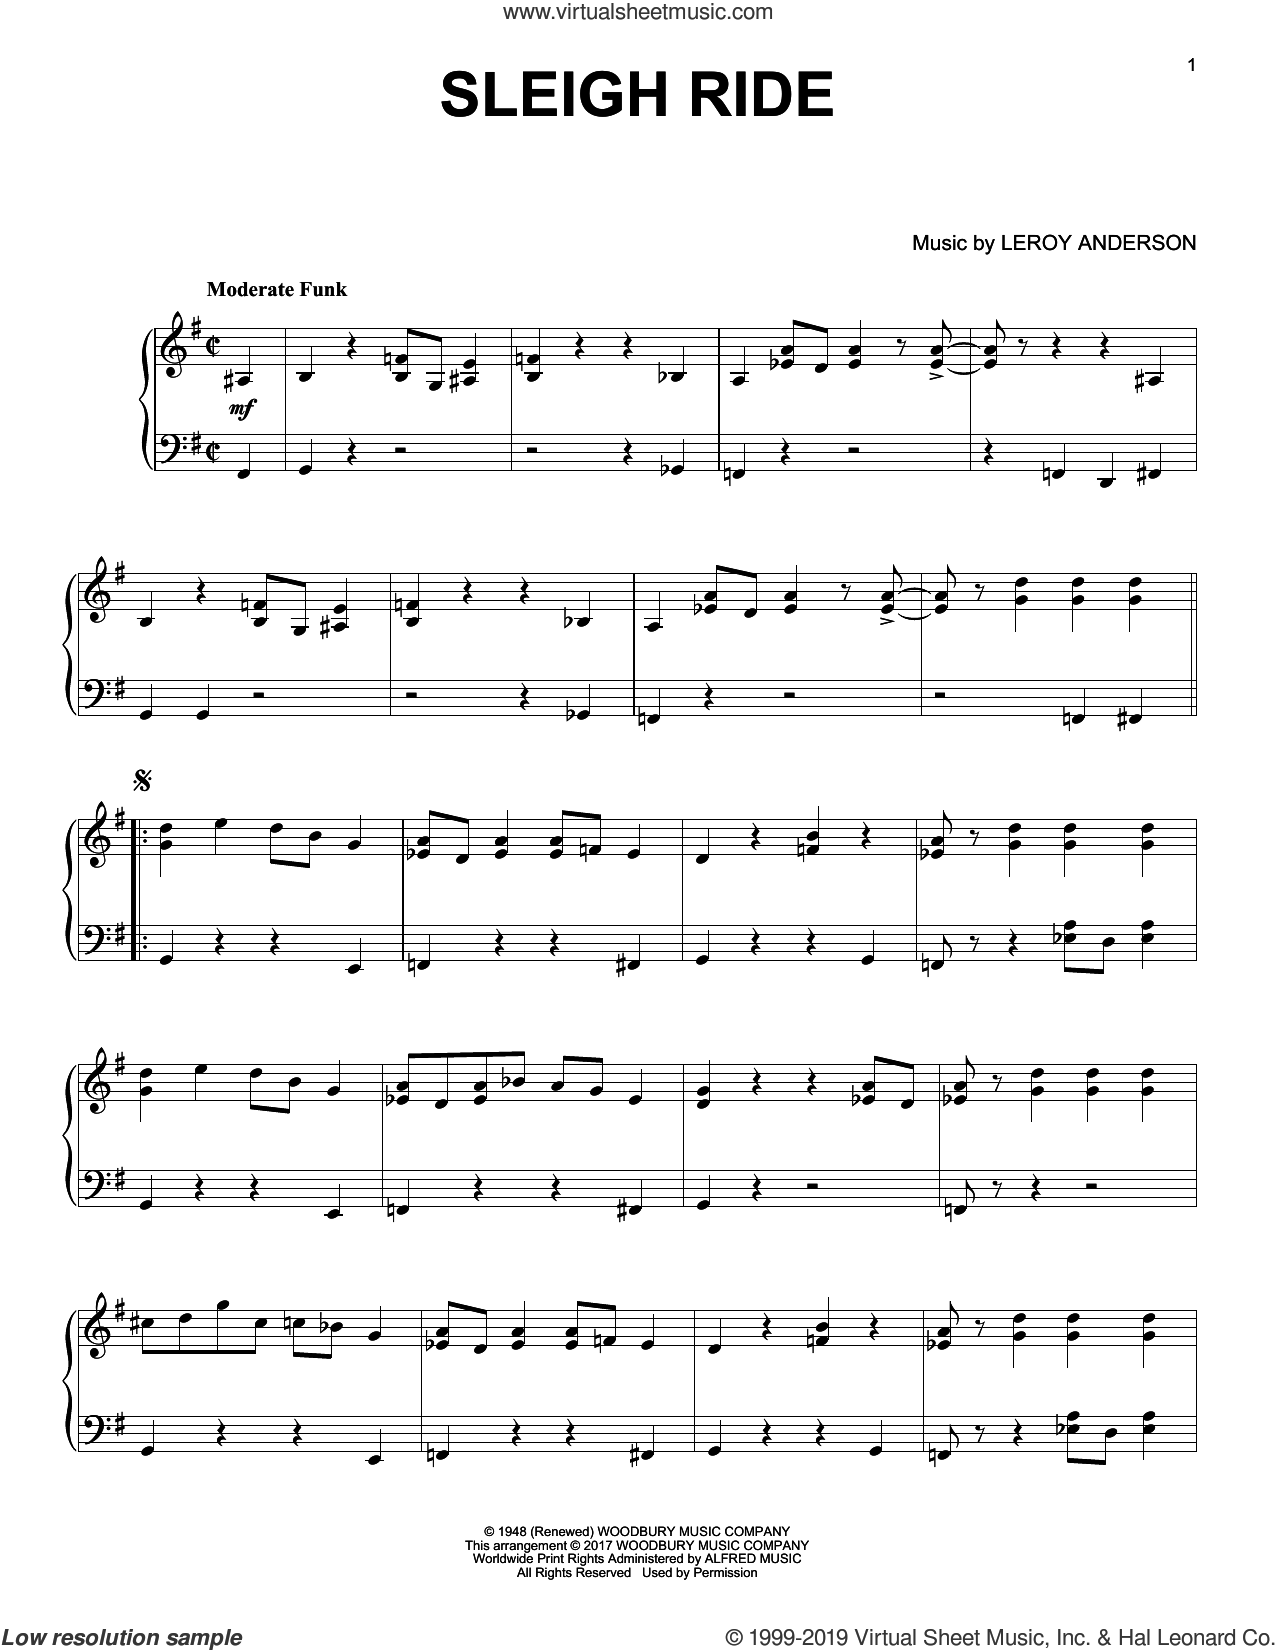 Sleigh Ride [Jazz version] sheet music for piano solo by Mitchell Parish and Leroy Anderson, intermediate skill level